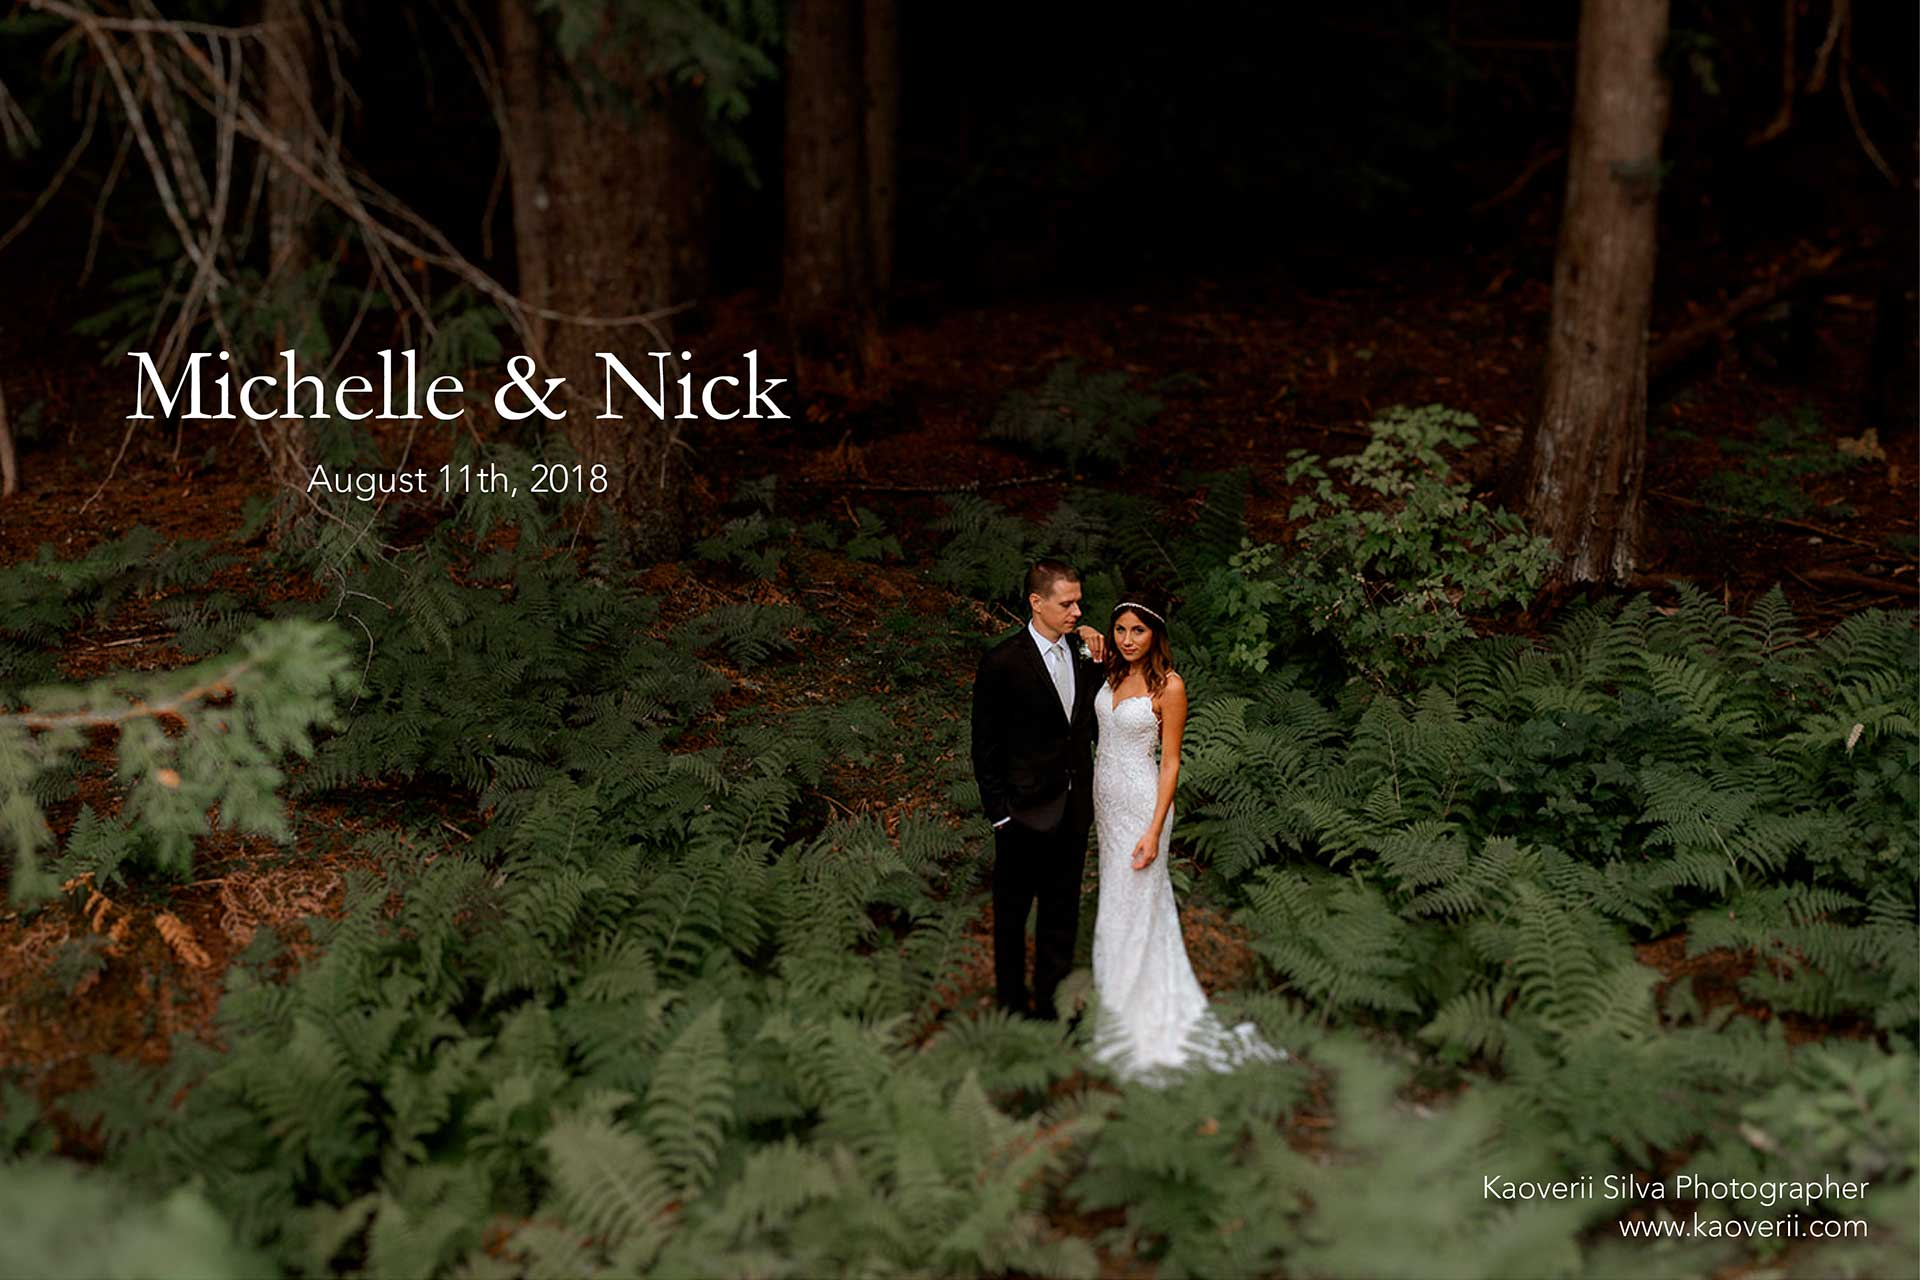 Michelle and Nick's Wedding